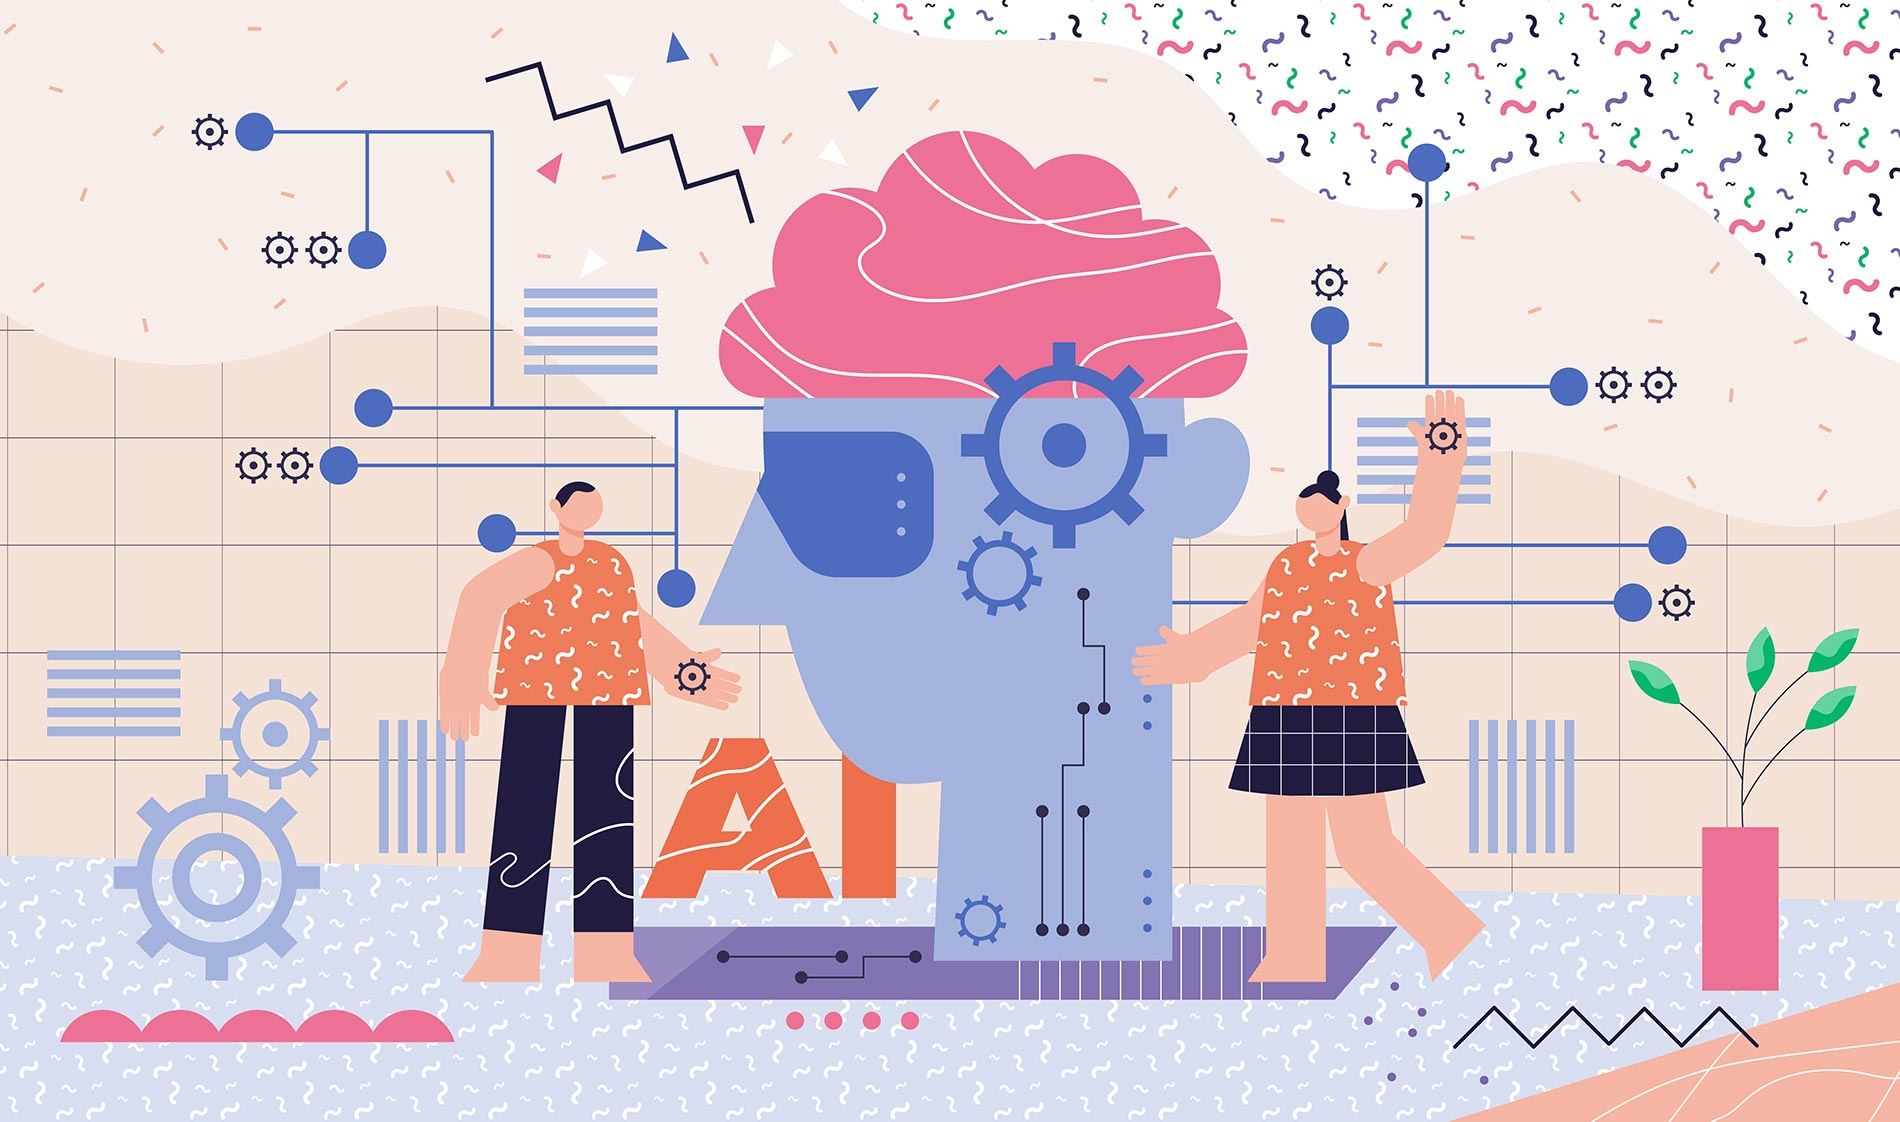 Artificial Intelligence advanced use in industries